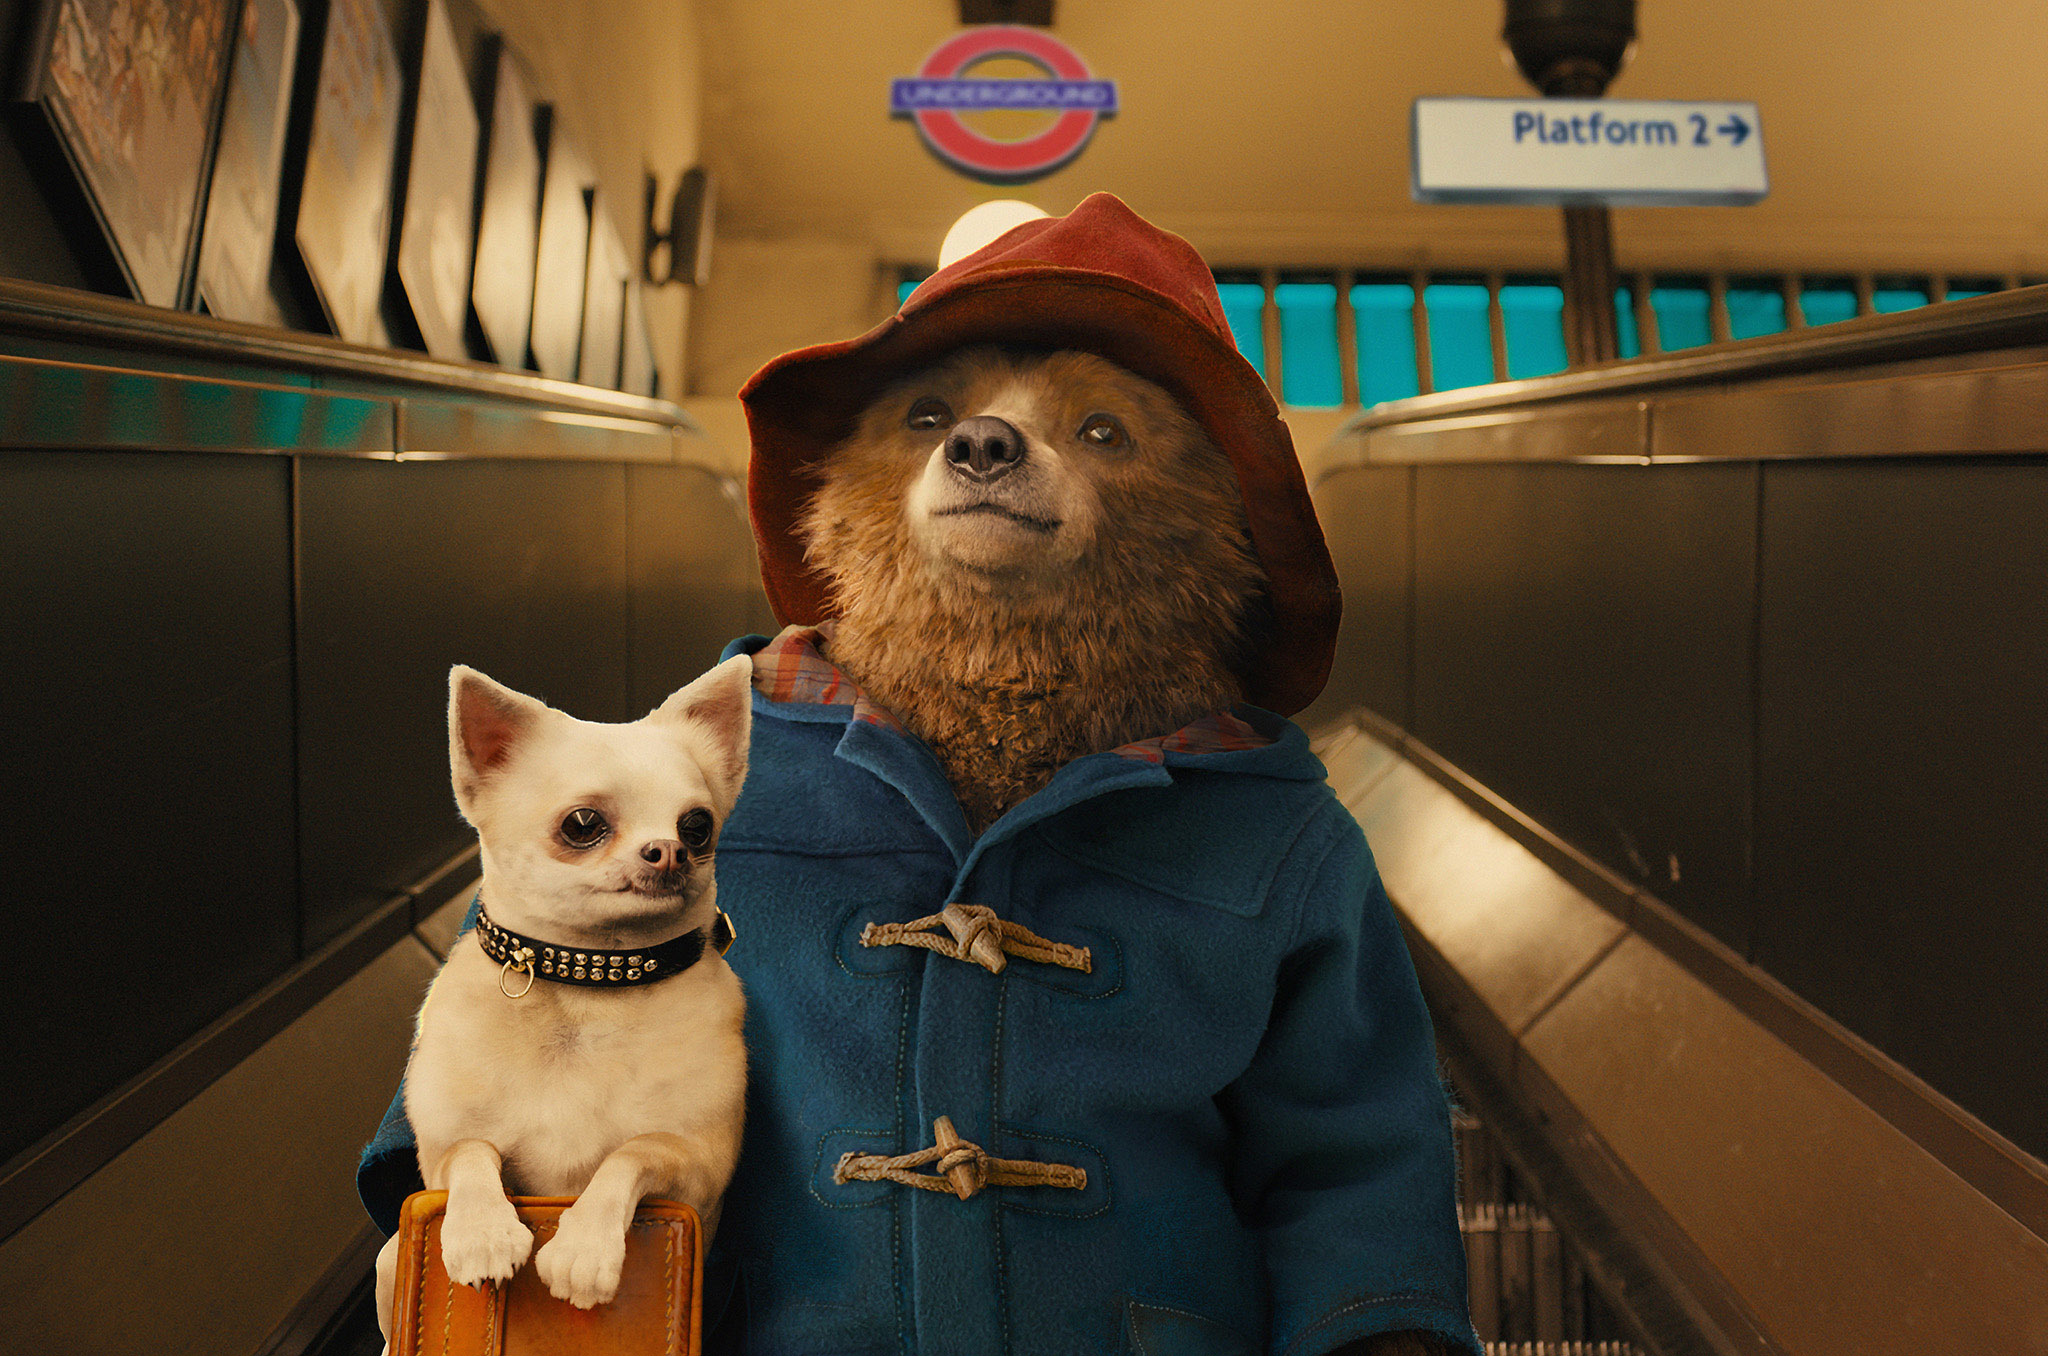 Family Film Club: Paddington (PG) + Show and Tell introduction with Framestore